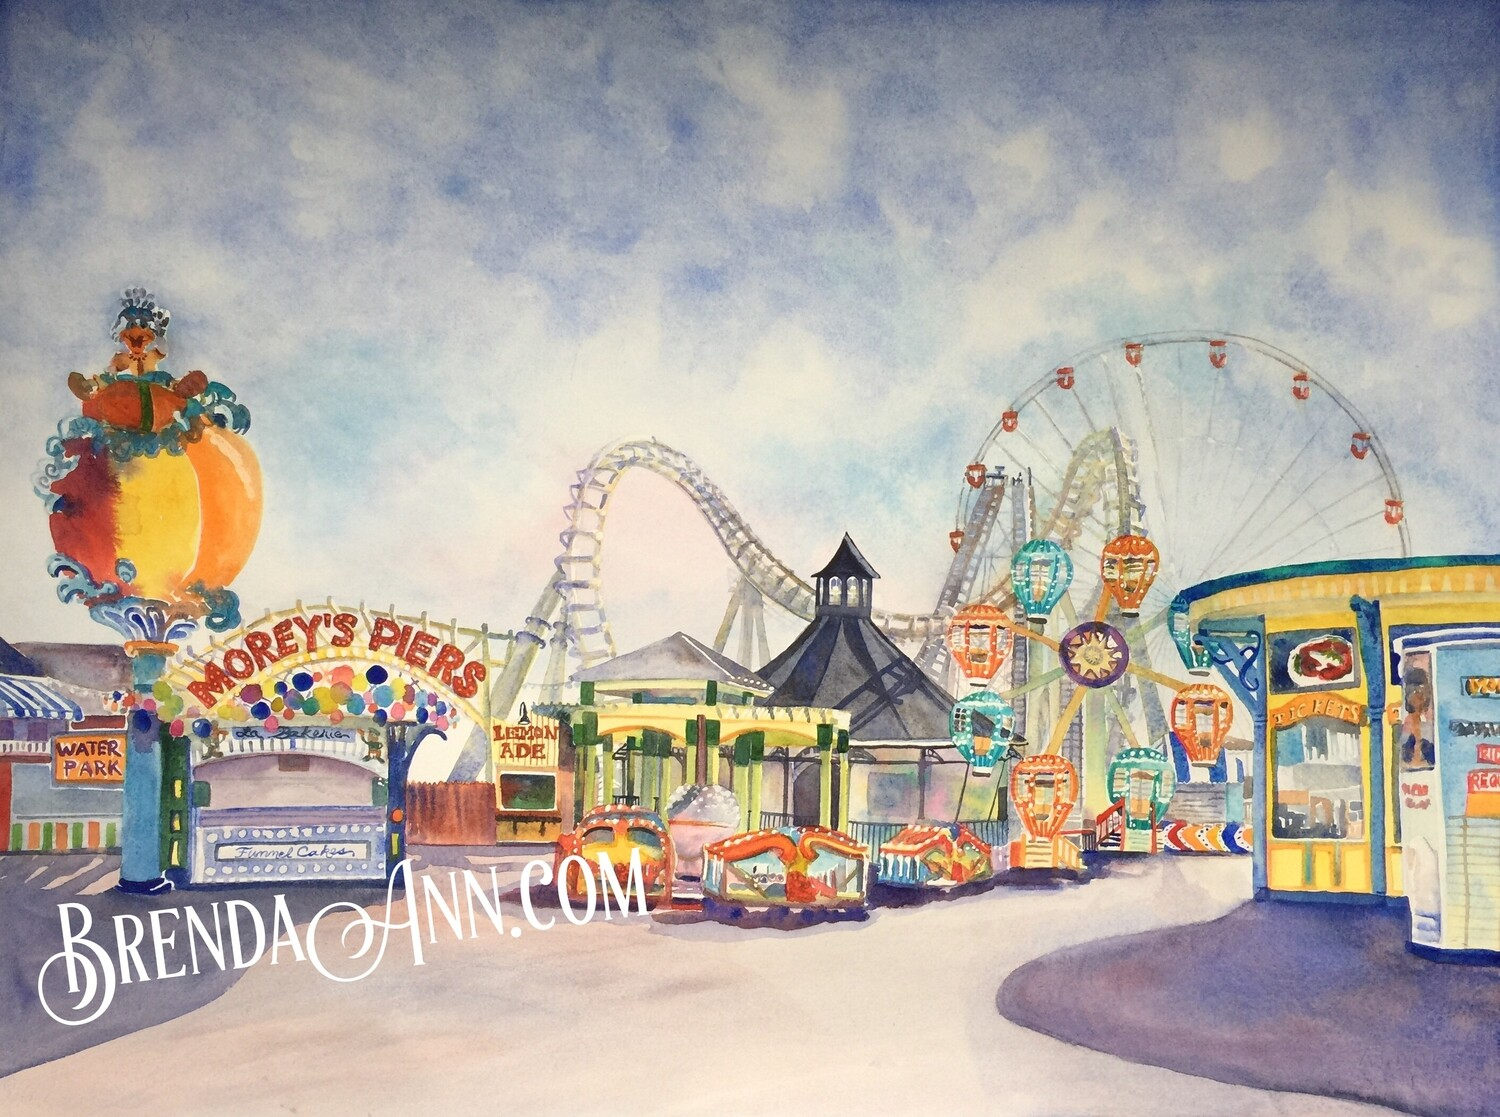 Wildwood Summer - Morey's Pier - Hand Signed Archival Watercolor Print